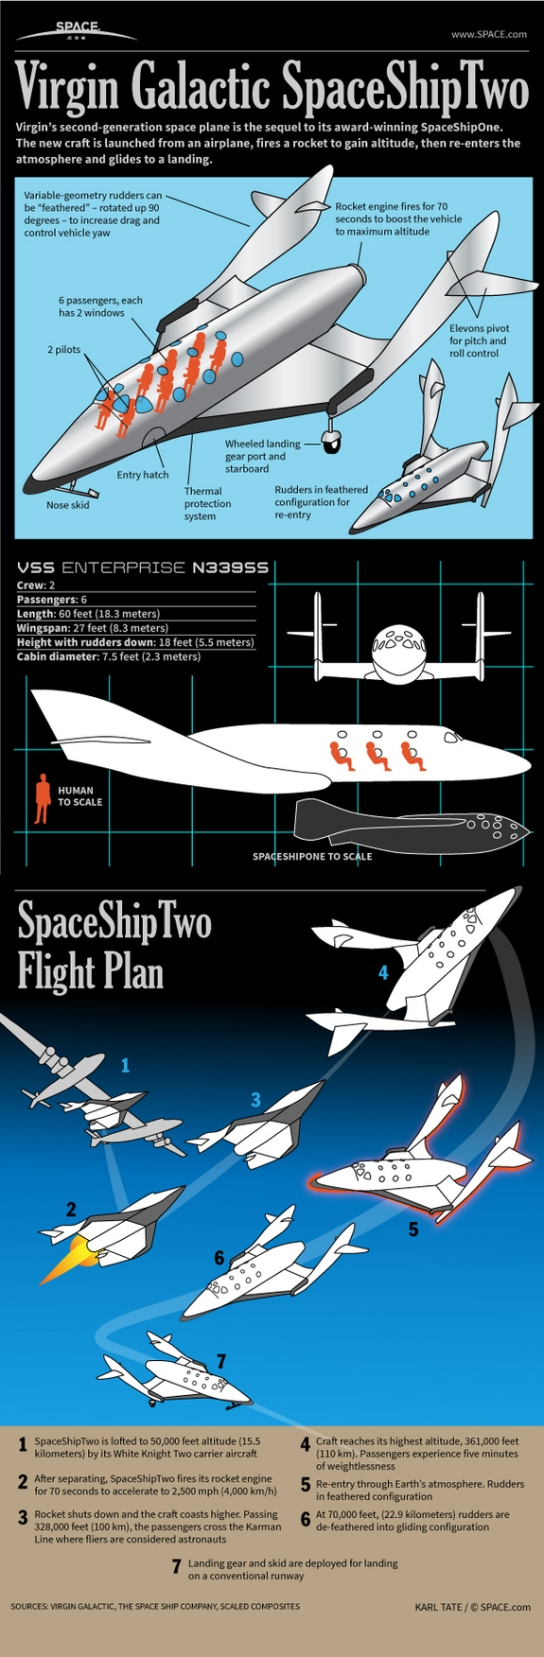 how-virgin-galactic's-space-ship-two-passengers-space-plane-works